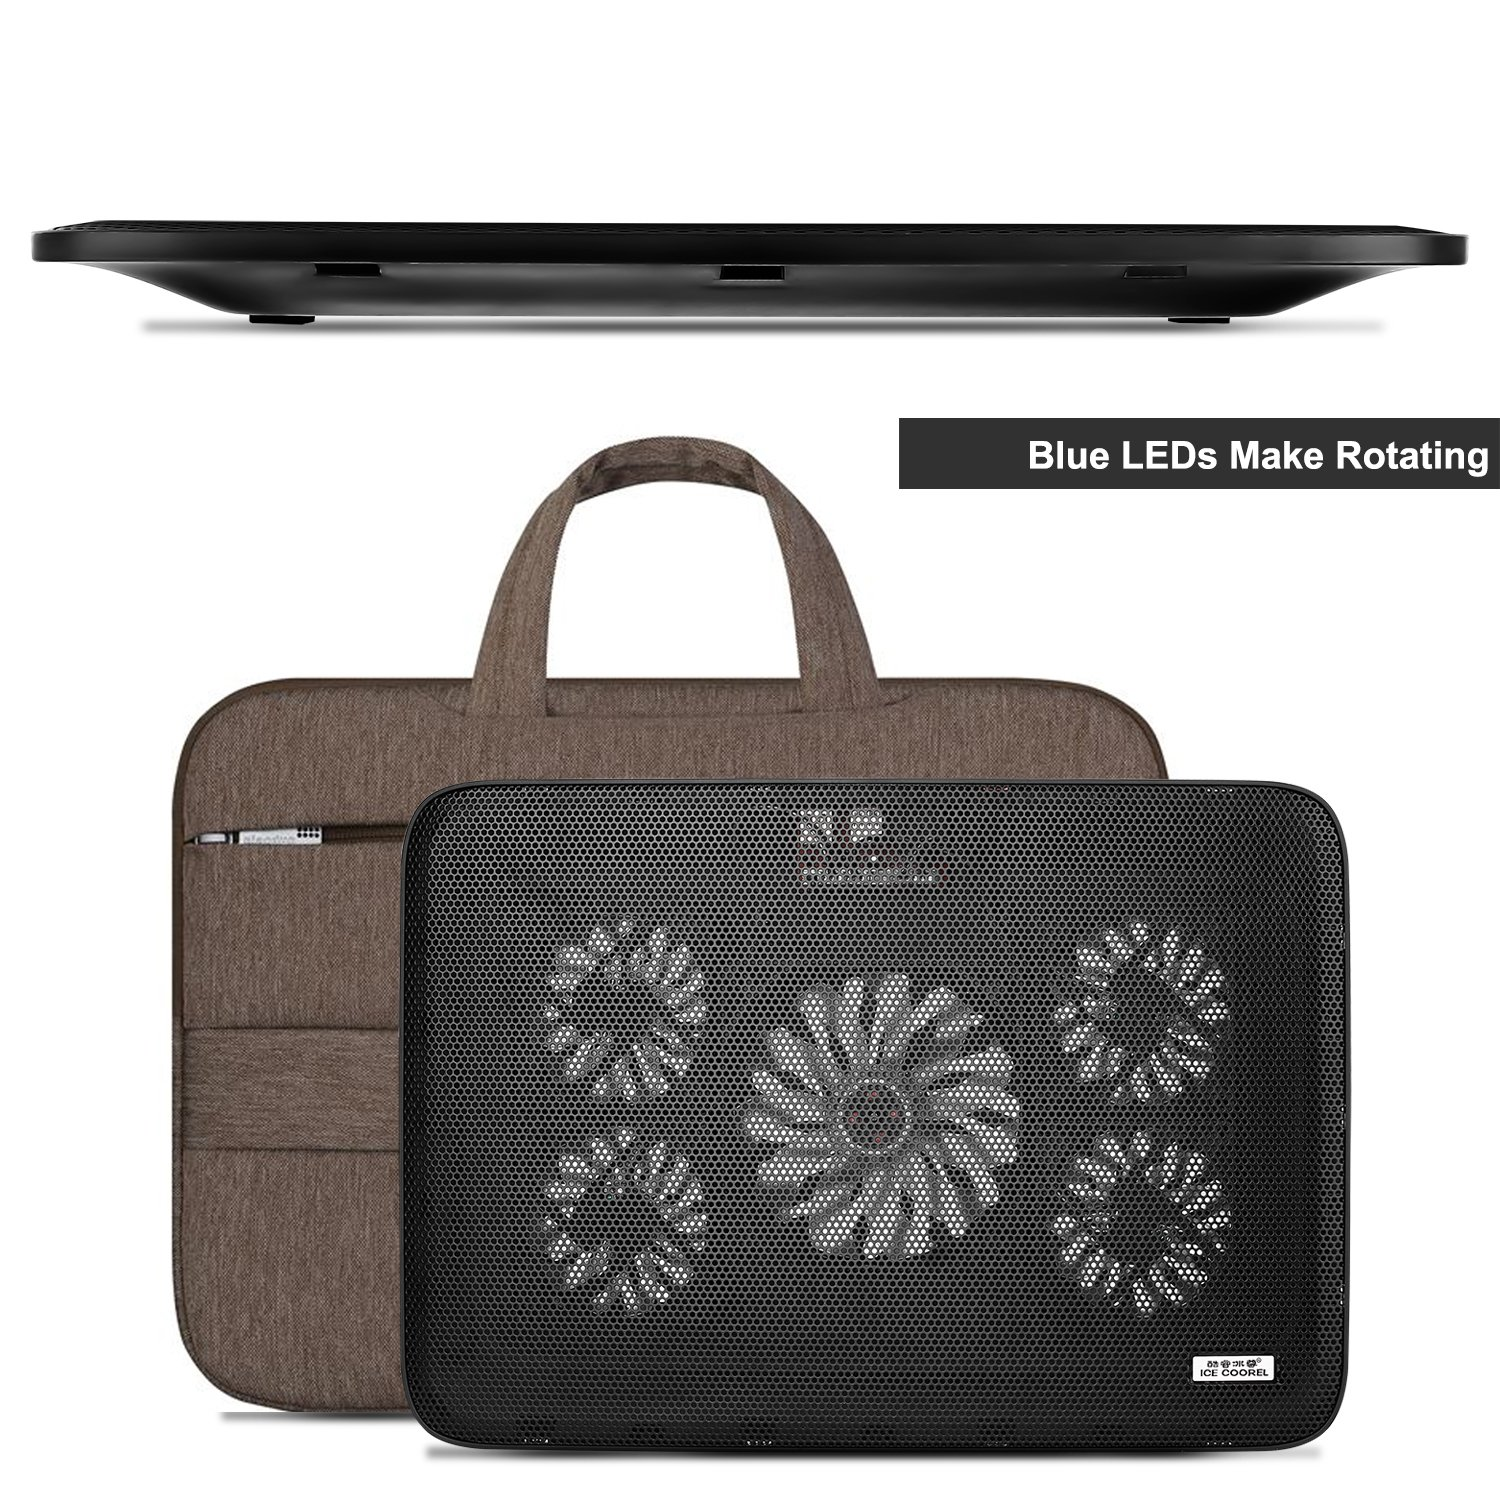 NO.17 Laptop Cooler Cooling pad, Portable Ultra-Slim Quiet Laptop Cooling Pad with 5 USB Powered Fans, Fits 10-15.6 inches by NO.17 (Image #5)